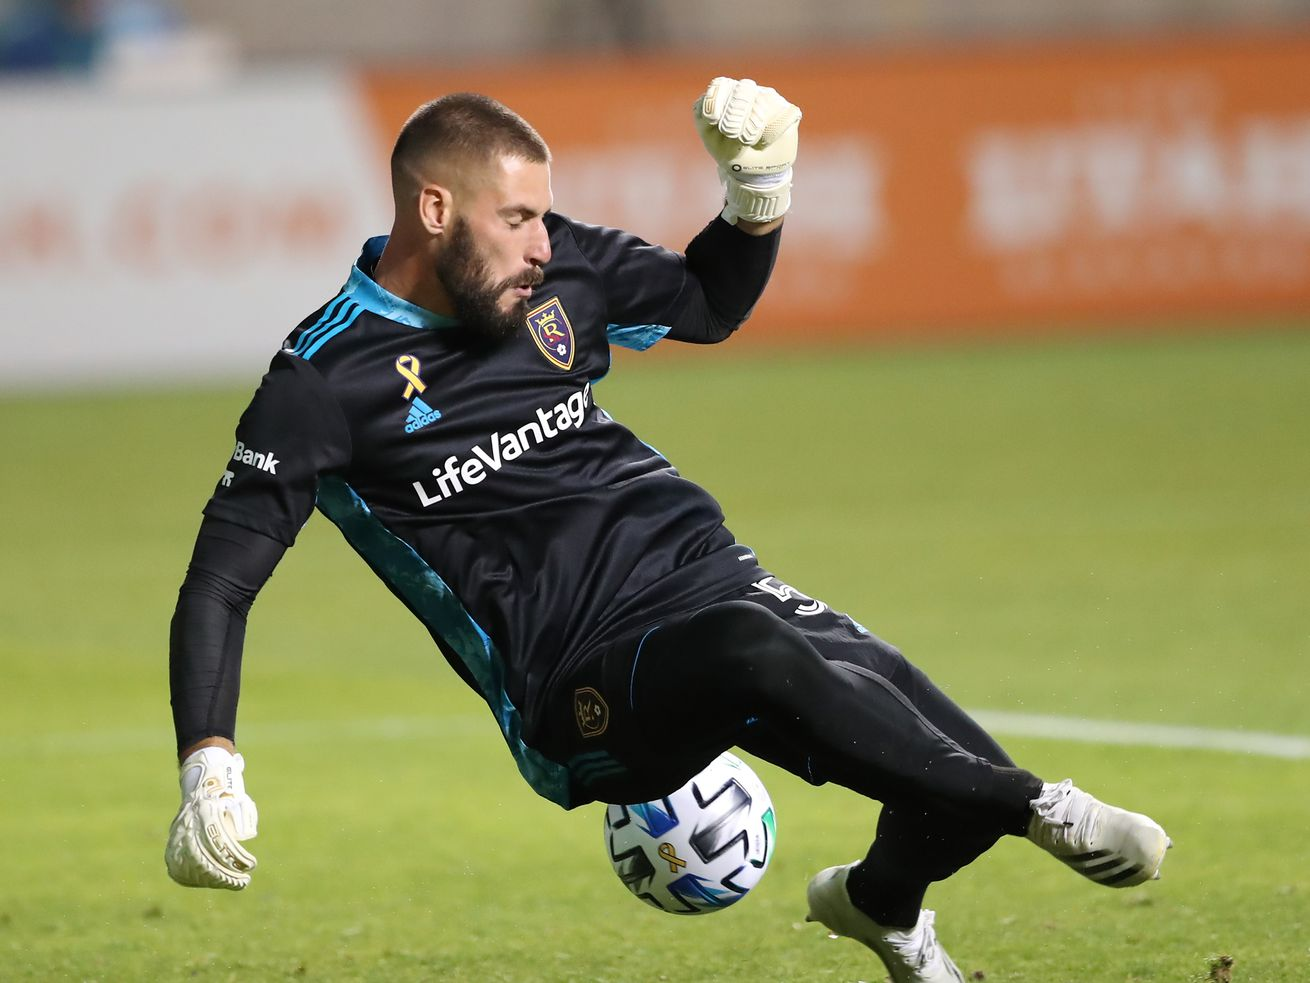 Real Salt Lake goalkeeper Andrew Putna (51) deflects a shot as Real Salt Lake and Seattle play an MSL soccer game at Rio Tinto Stadium in Sandy Utah on Wednesday, Sept. 2, 2020. The two teams battled to a 2-2 draw.